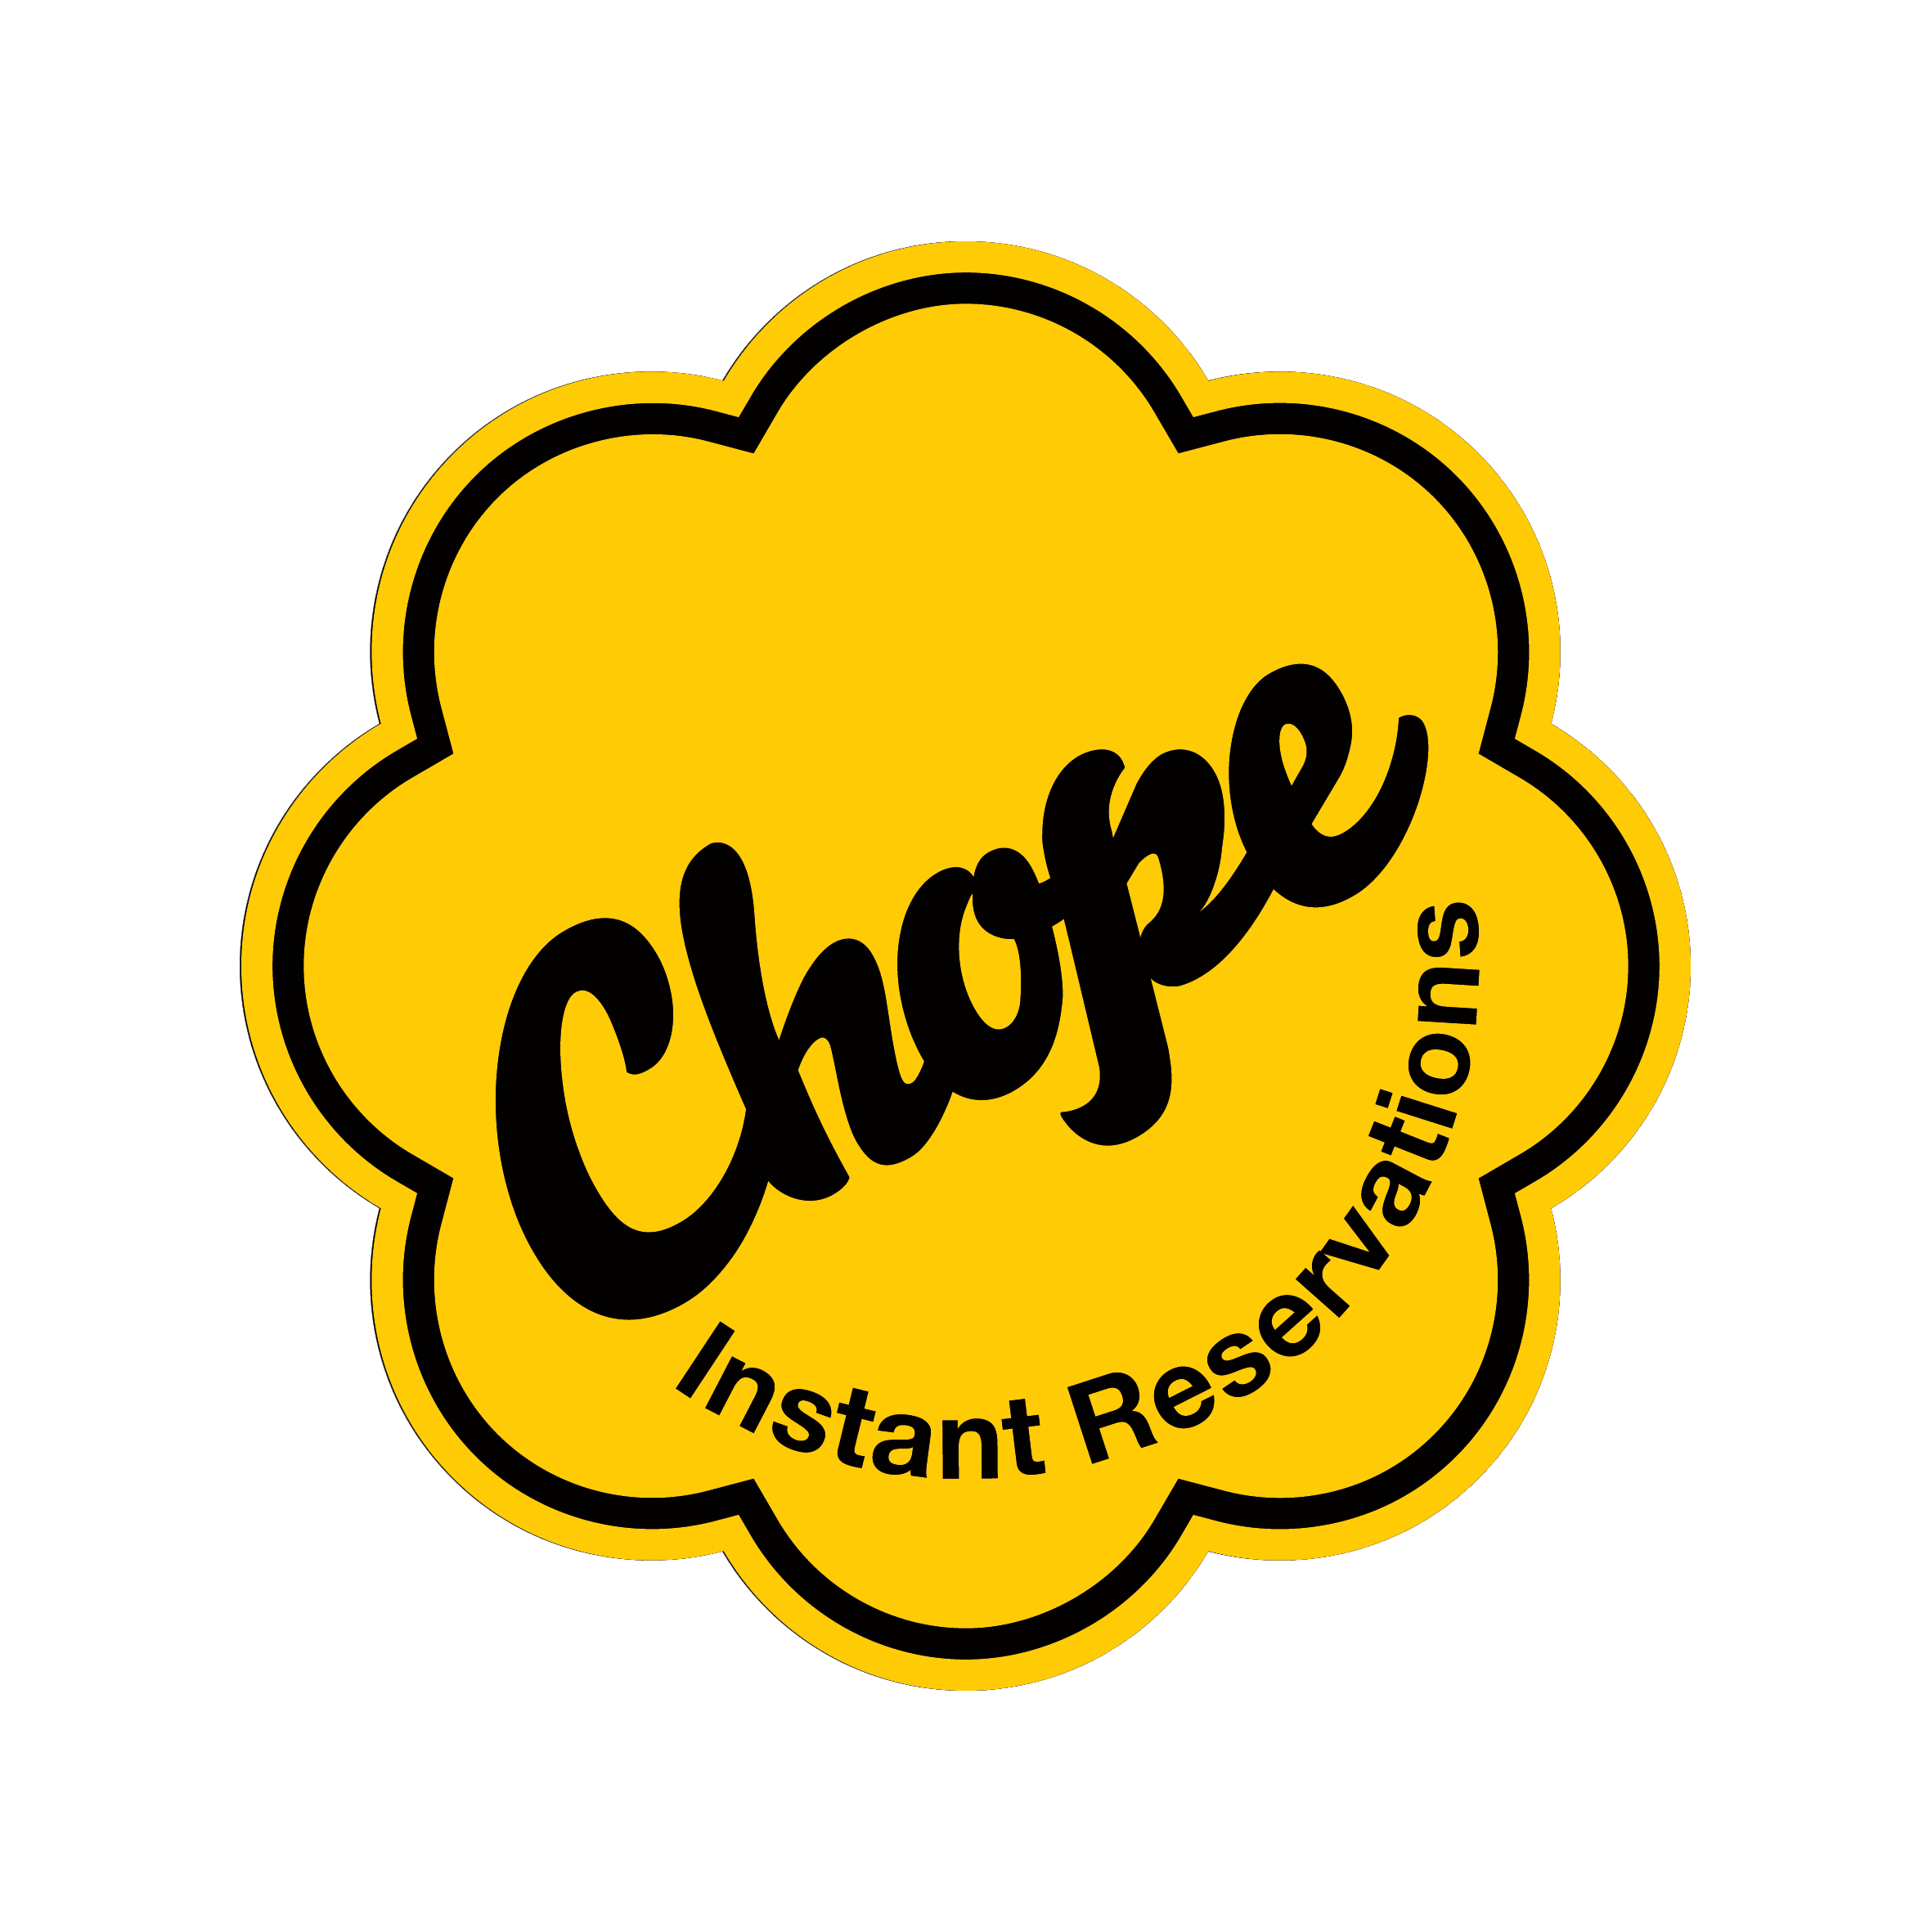 chope-logo-plain-1